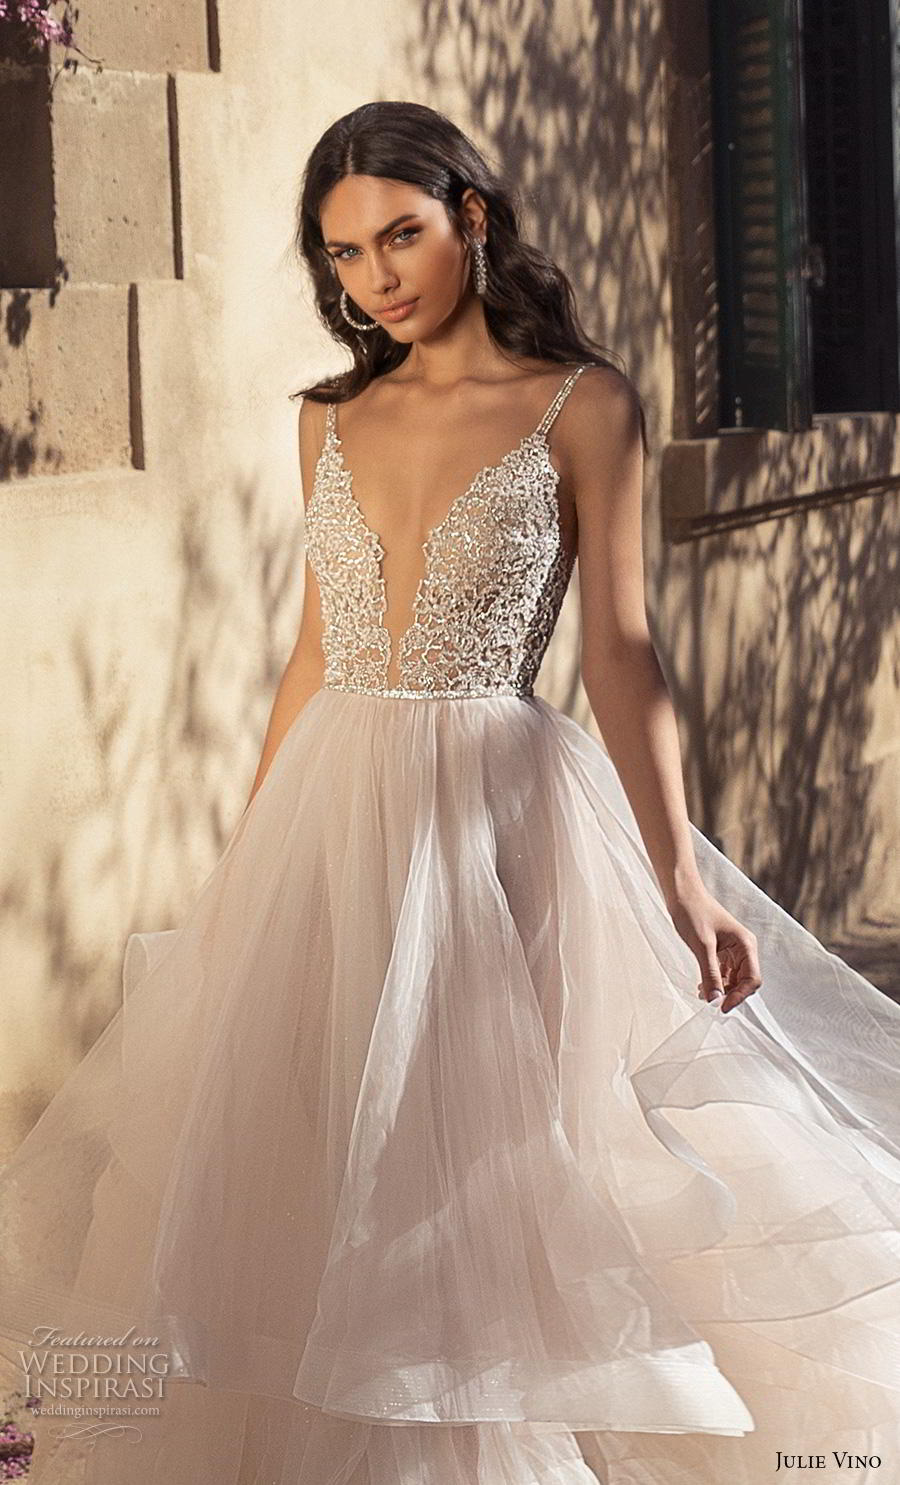 julie vino 2020 barcelona bridal sleeveless thin strap deep sweetheart neckline heavily embellished bodice tulle skirt romantic blush soft a  line wedding dress keyhole back royal train (2) zv